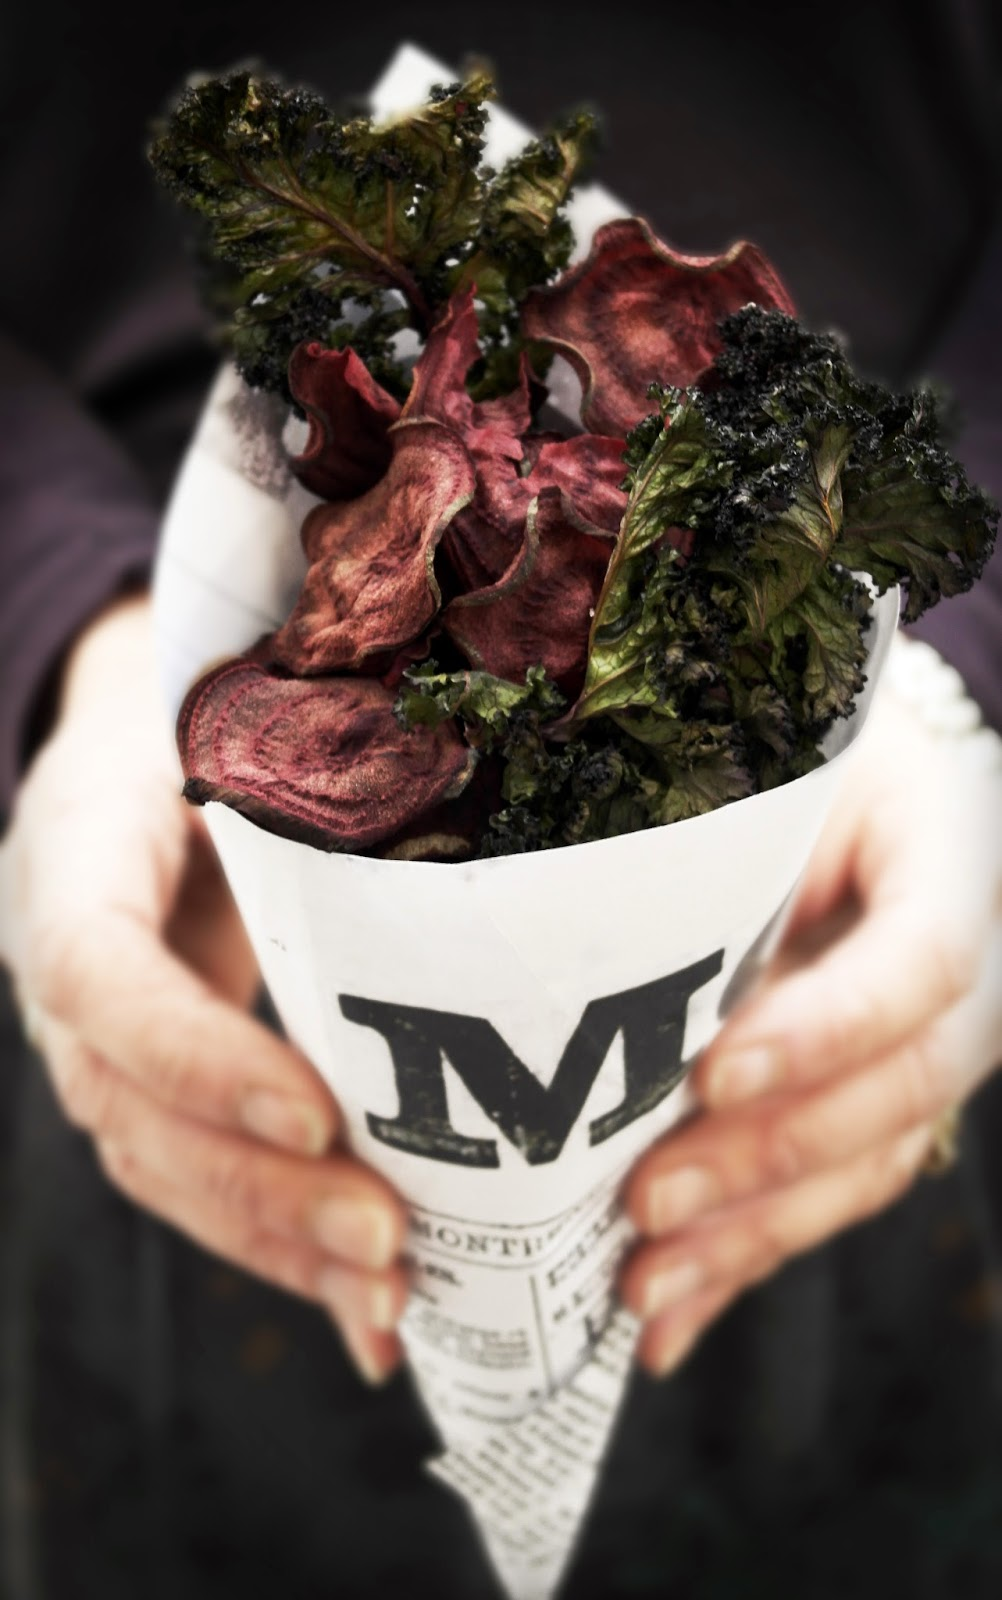 twiggstudios: baked beet and kale chips